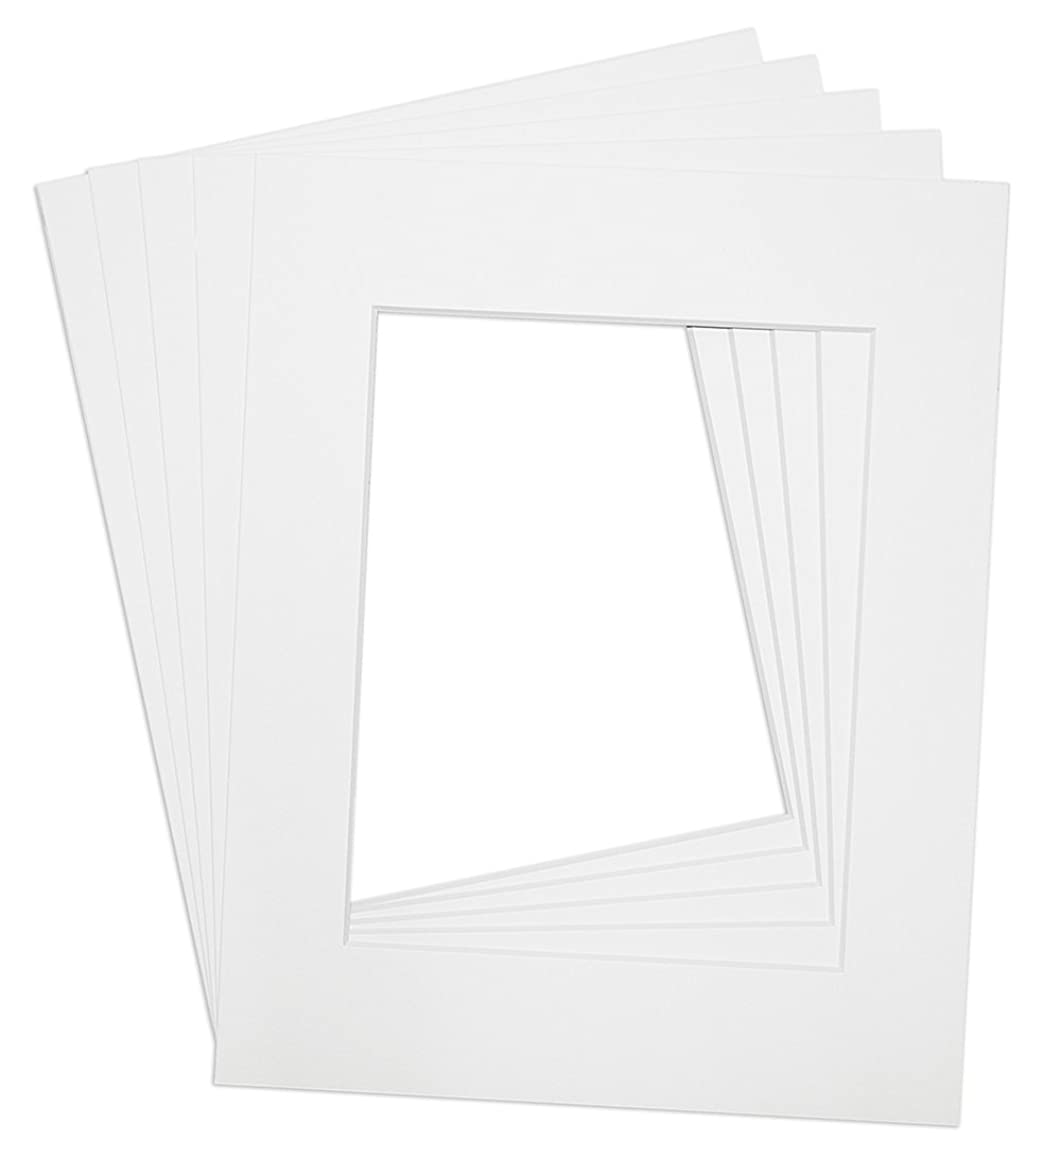 Golden State Art, Pack of 5, 16x20 Picture Mats Mattes, 8-ply, with White Core Bevel Cut for 11x14 Photo + Backing + Clear Bags, Color: White